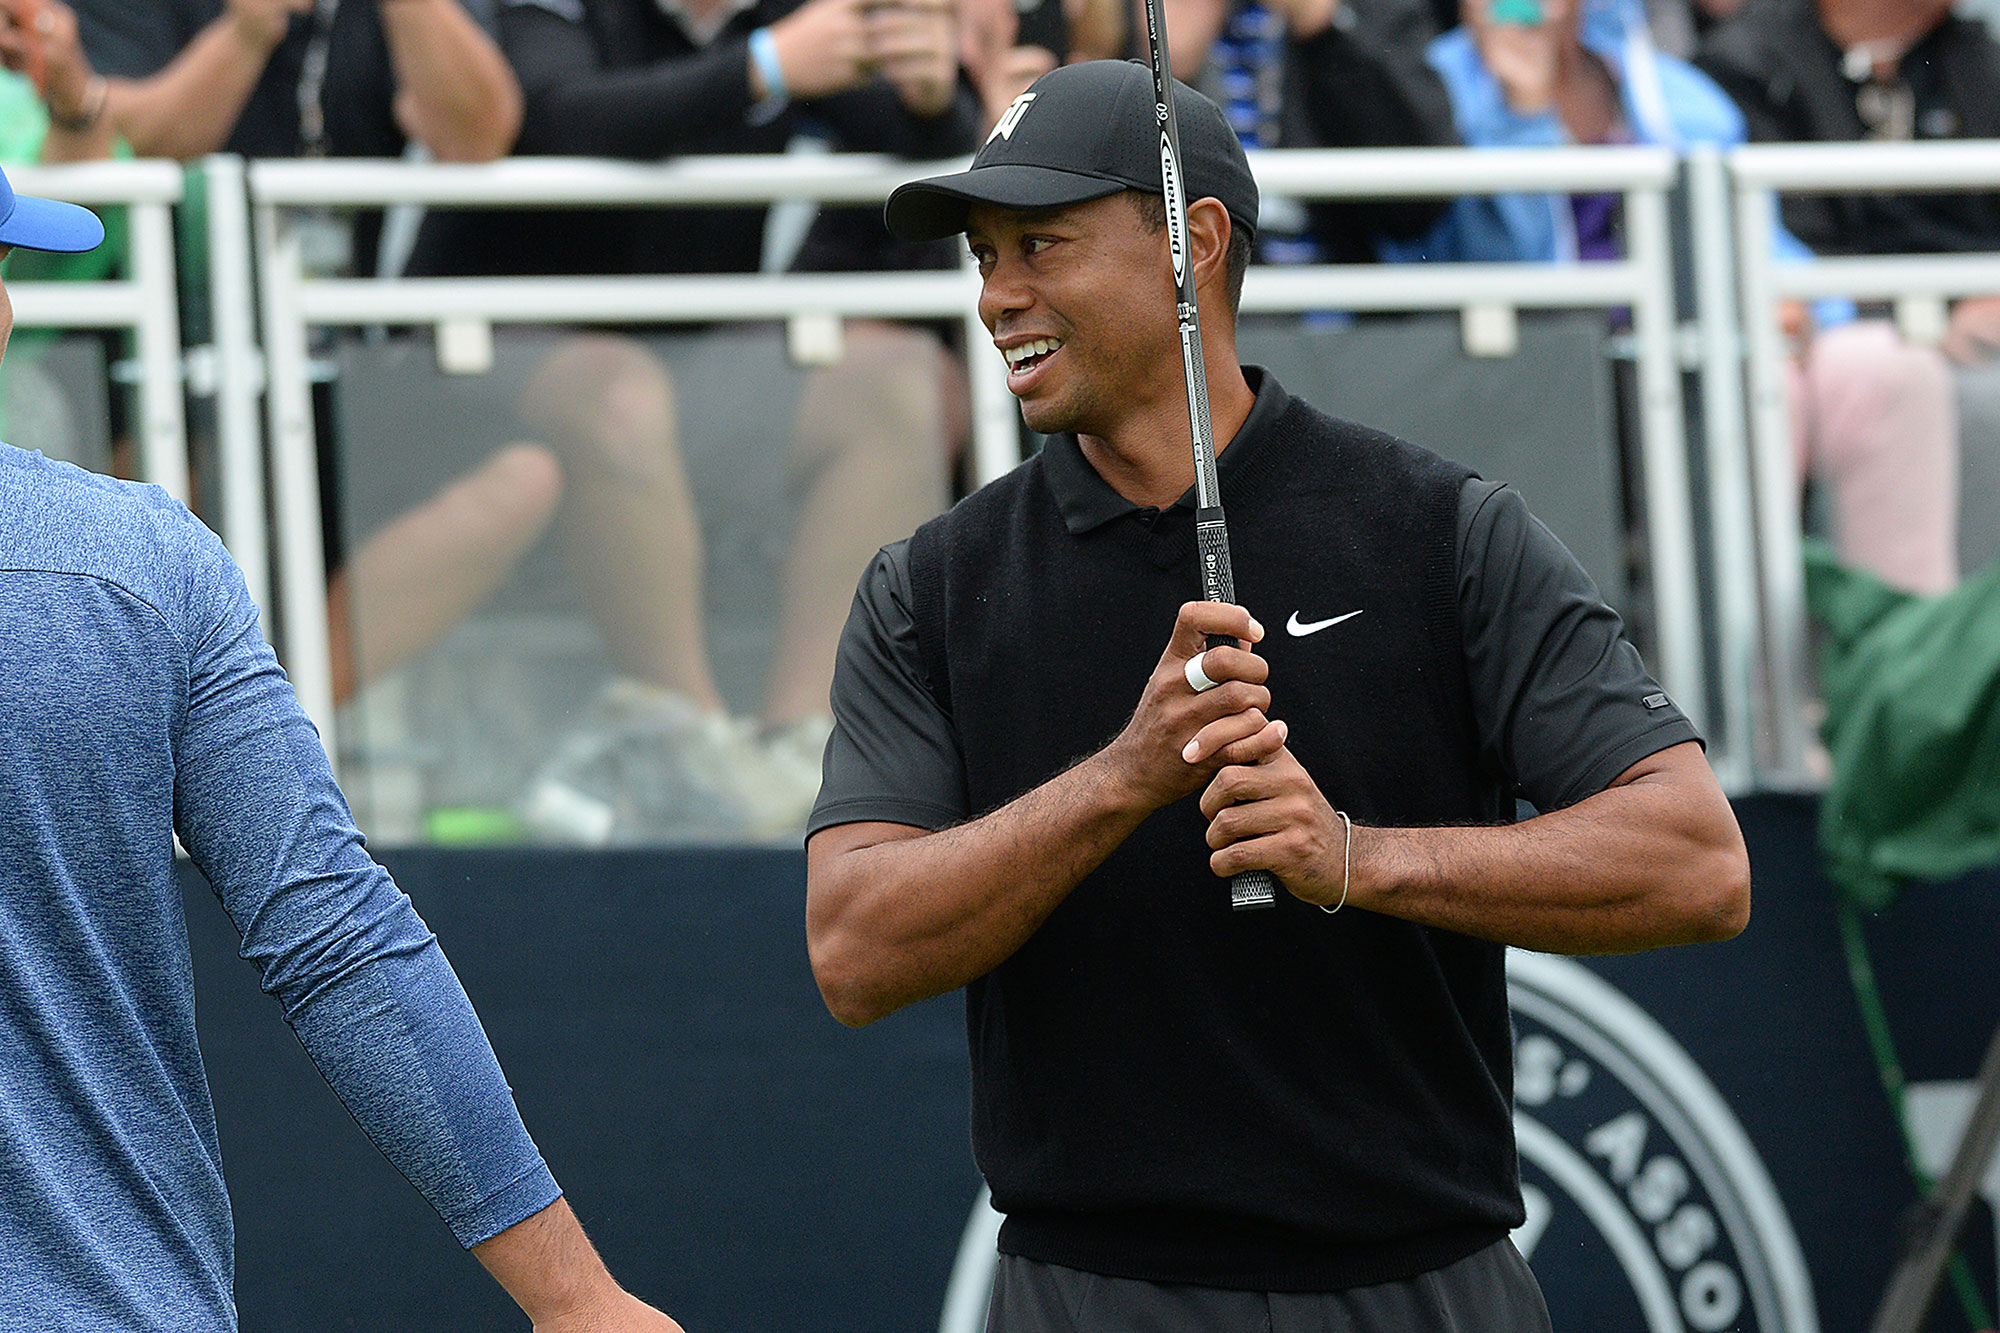 85 thousand bet on tiger woods ny post zac efron bet on it free mp3 download